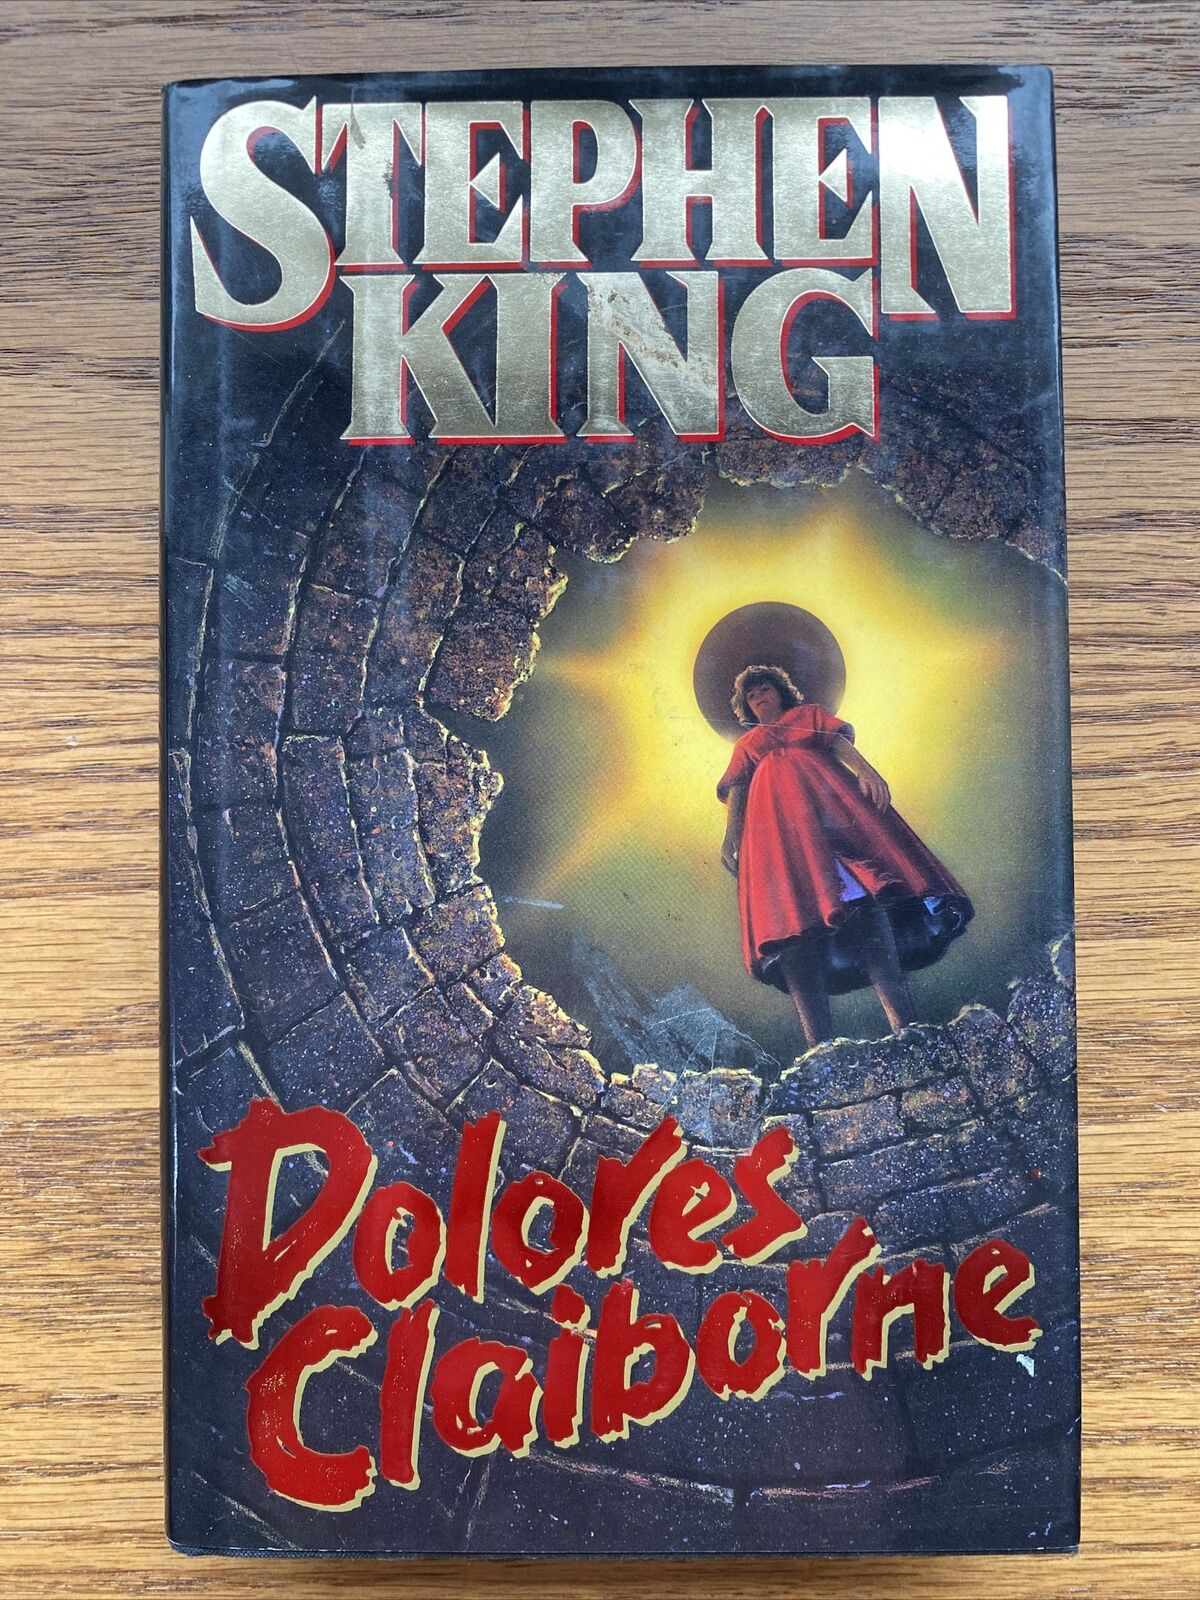 Stephen King Dolores Claiborne 1993 Hardcover Dust Jacket 1st Print Edition NICE